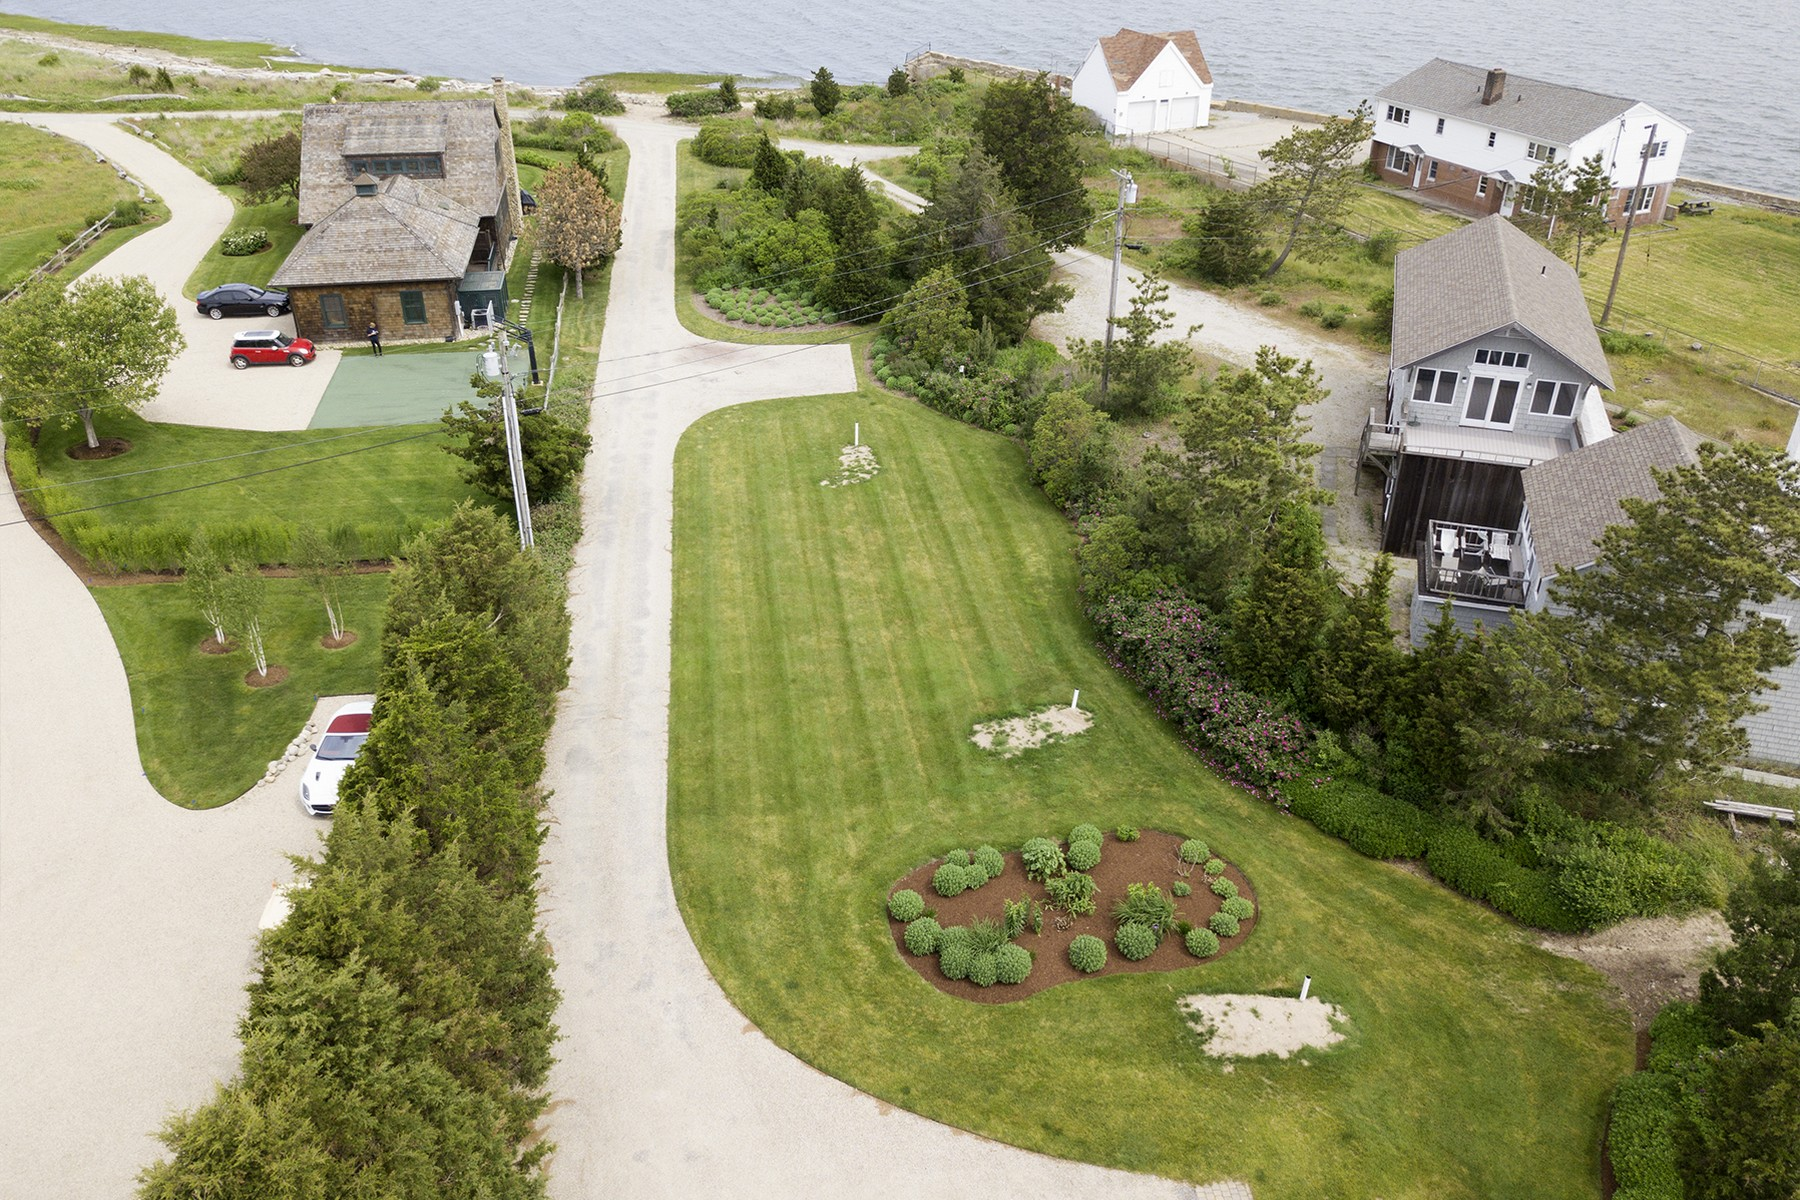 Land for Sale at Rare Opportunity to Build New Waterfront Home in Fenwick 101a Sequassen Avenue, Old Saybrook, Connecticut 06475 United States